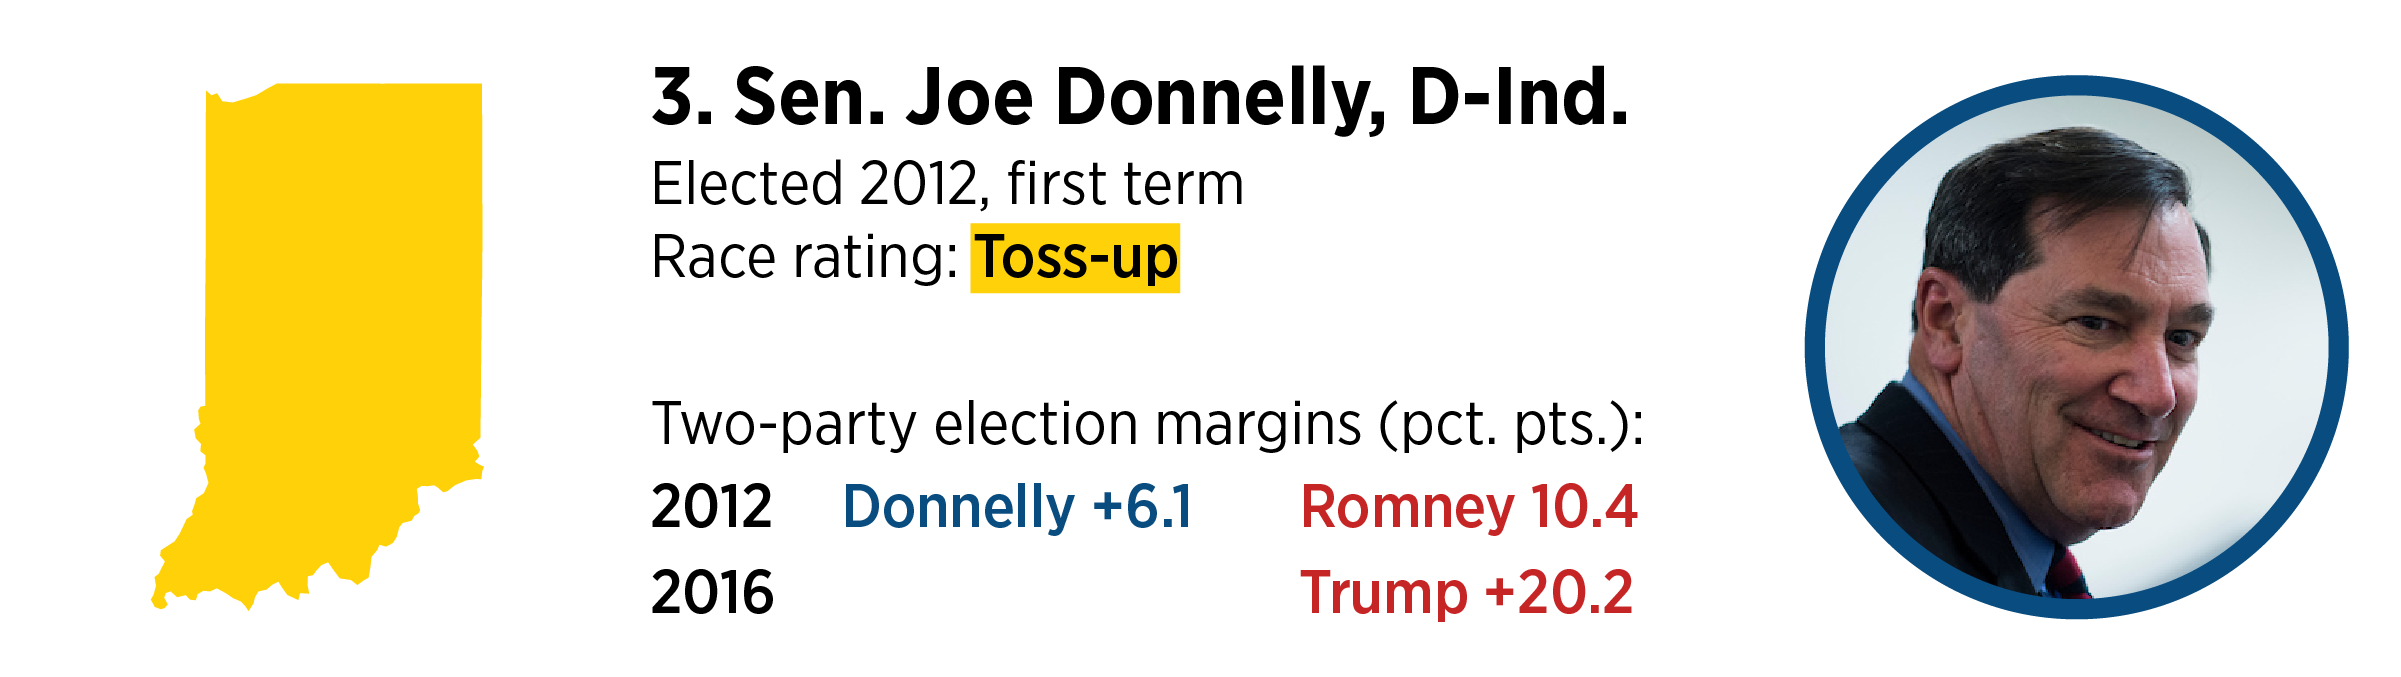 SENATE3-DONNELLY